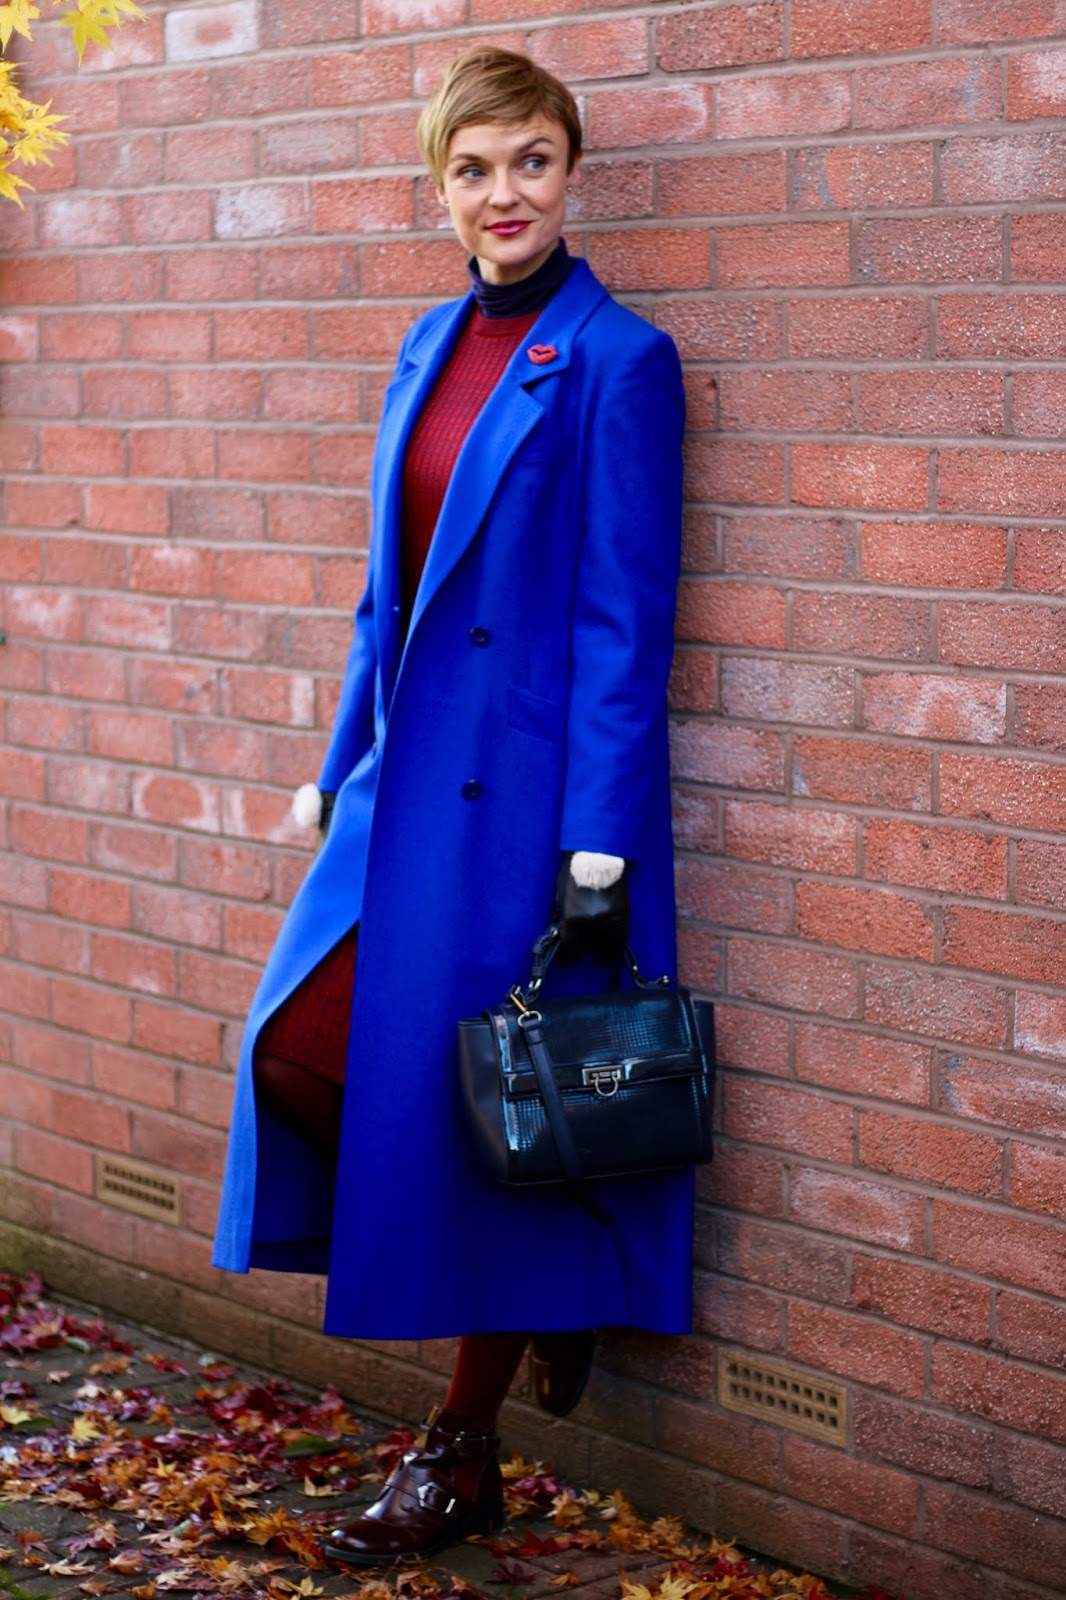 Cobalt Blue Long Coat, Burgundy Wool Dress | Autumn Outfit | Fake Fabulous